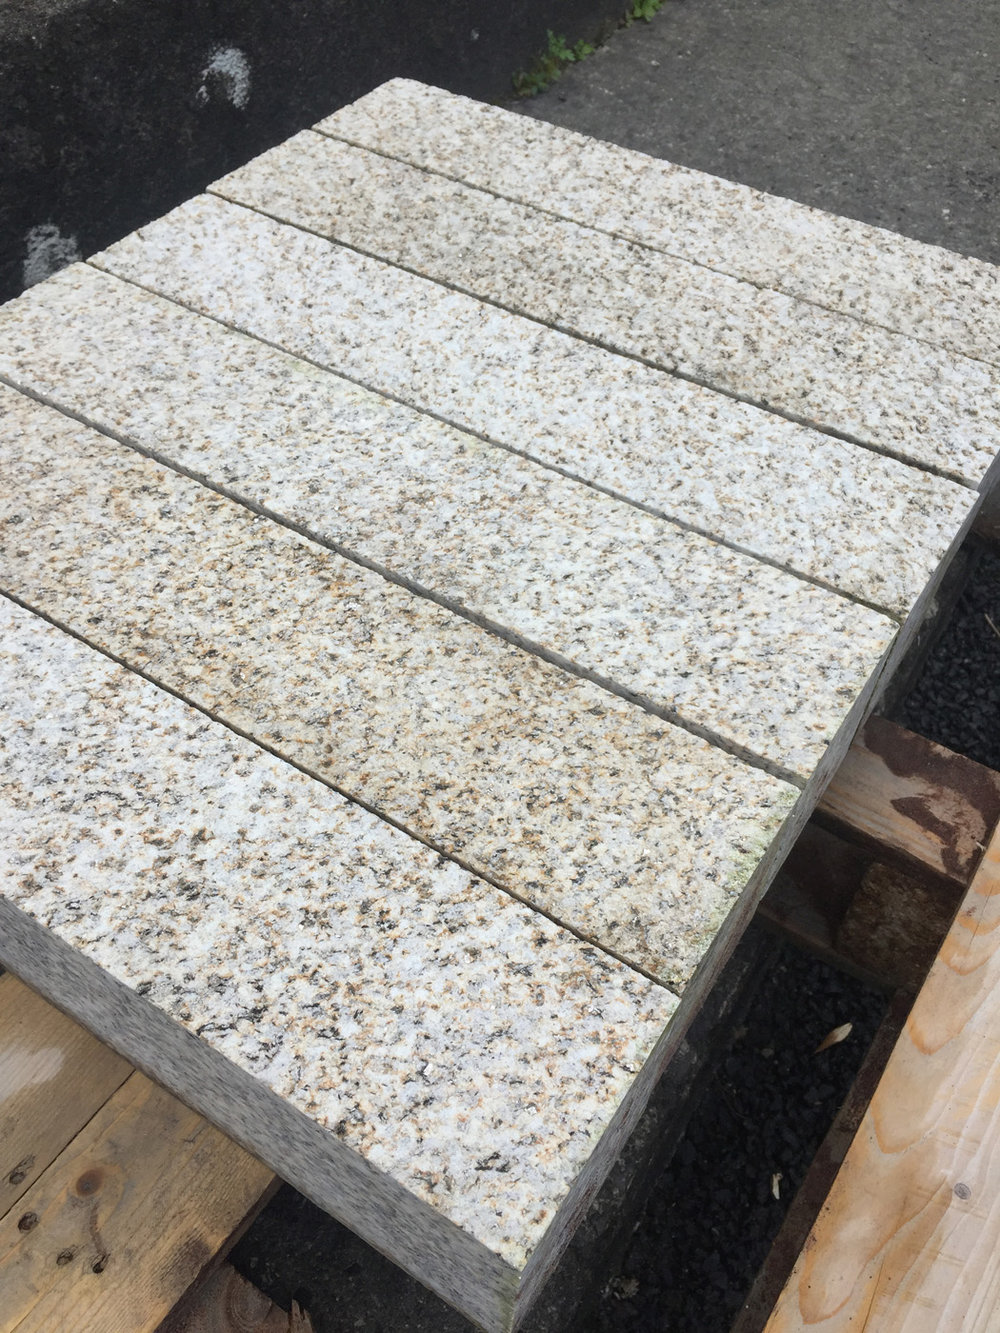 138 linear metres 100x100 Portuguese granite with 1 bushhammered face in lengths of 900, 750, 600 & 500 - €1,400. This could be used for kerbing or cladding